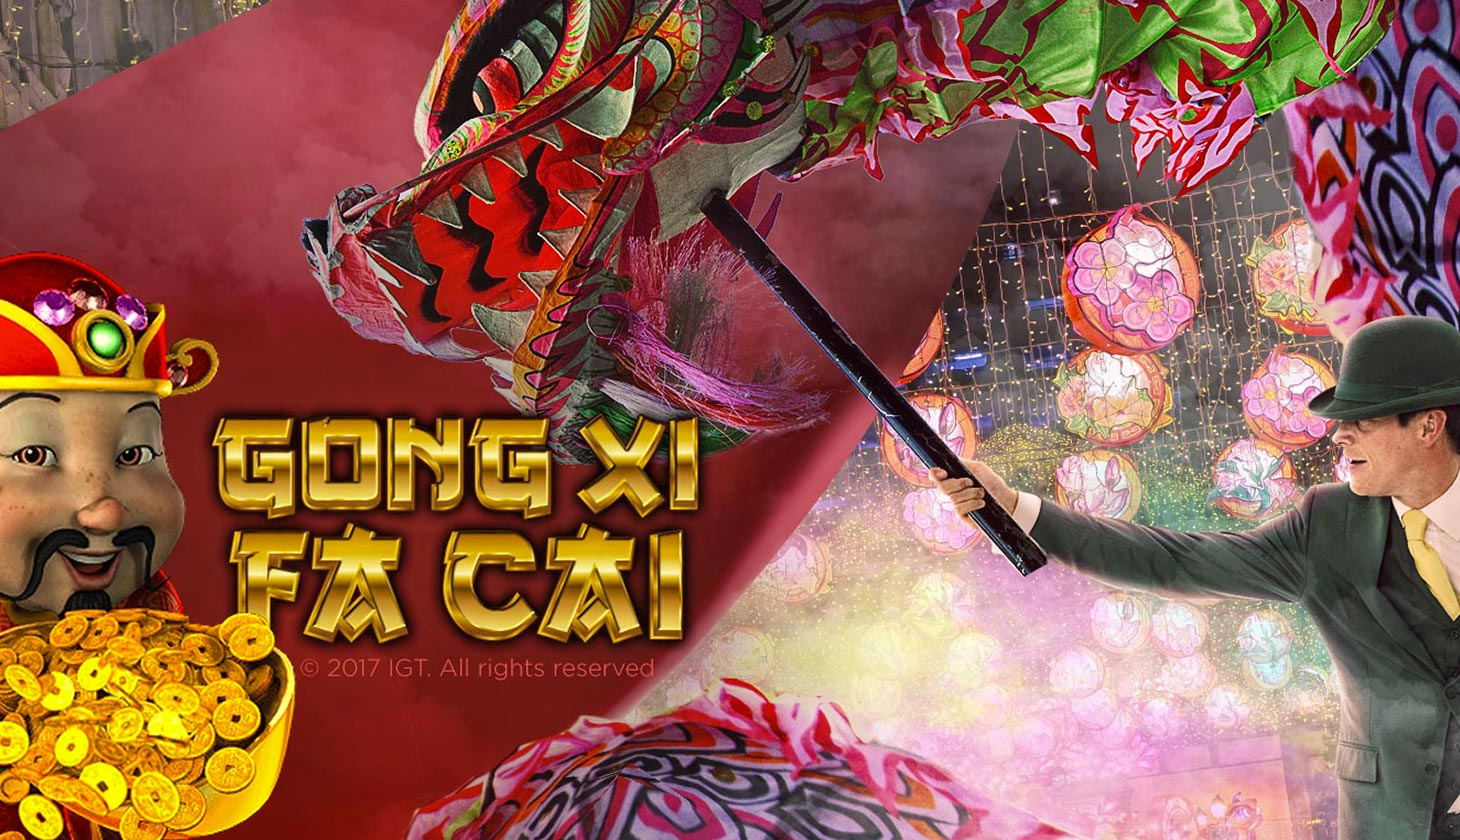 mr-green-online-casino-gong-xi-fa-cai-cash-giveaway